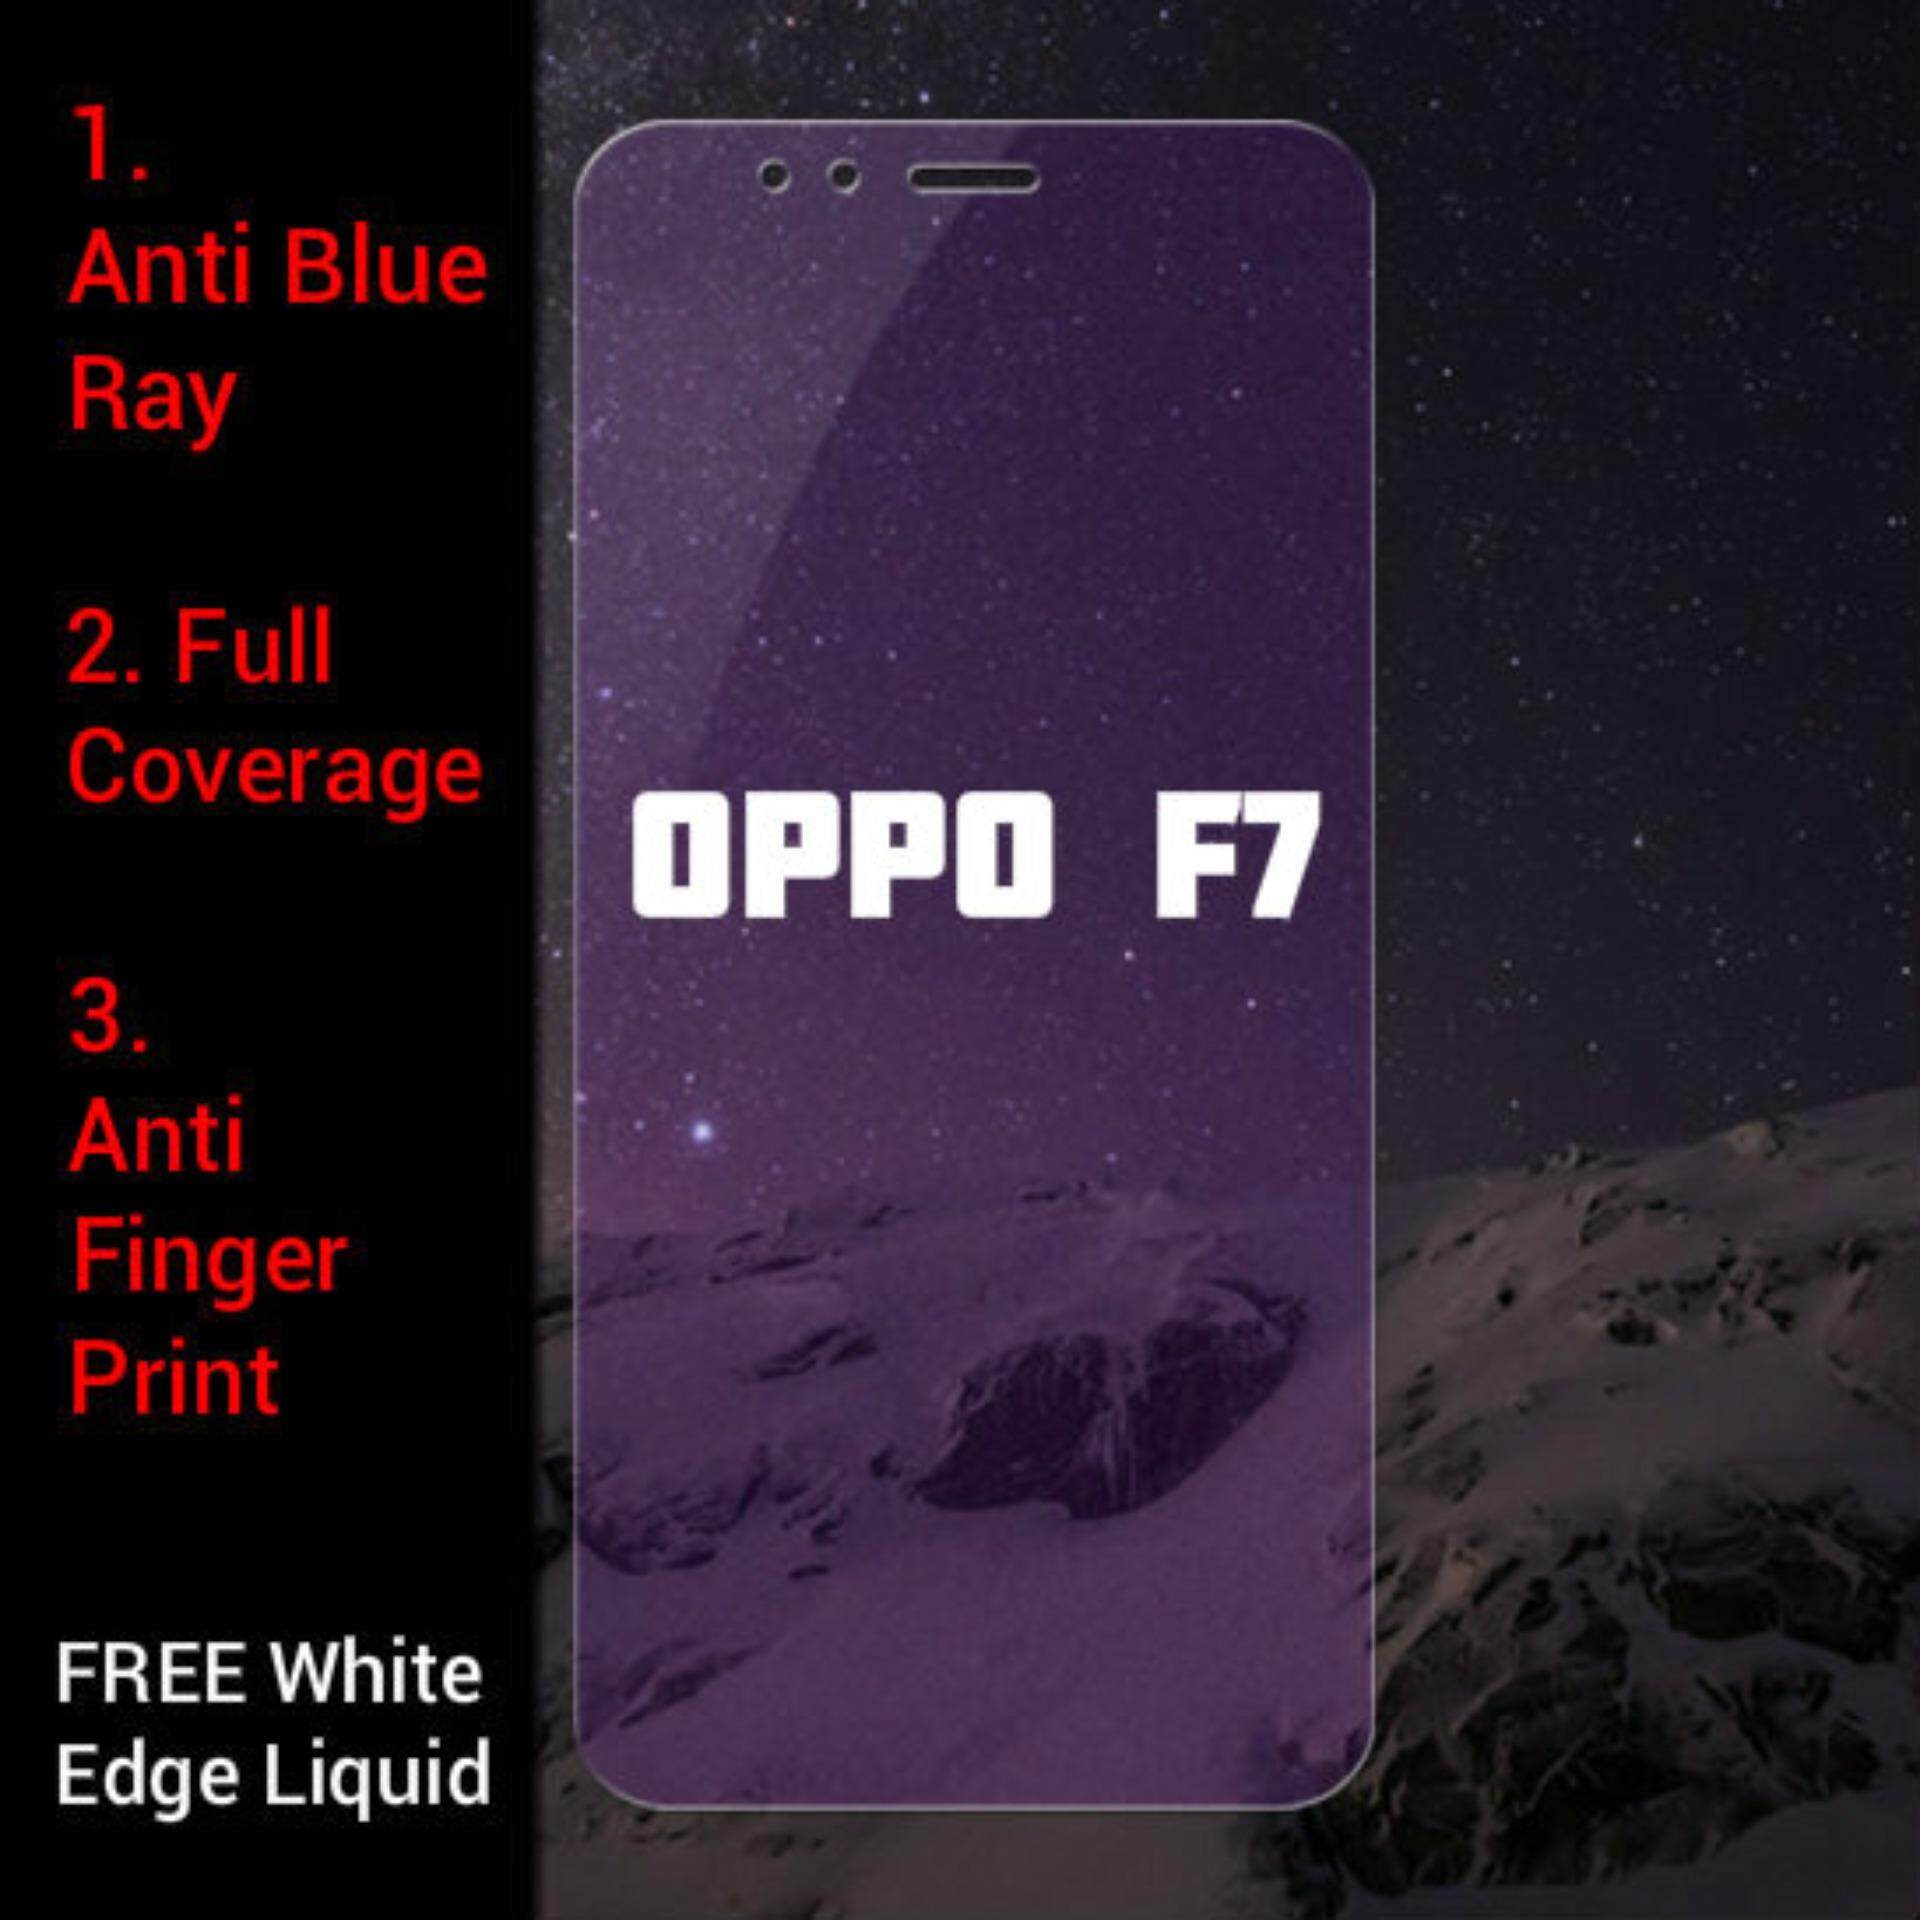 Oppo Products Accessories For The Best Price In Malaysia Lcd F1 Fullset Touchscreen Original F7 Blue Ray Matte Full Tempered Glass Screen Protector Anti